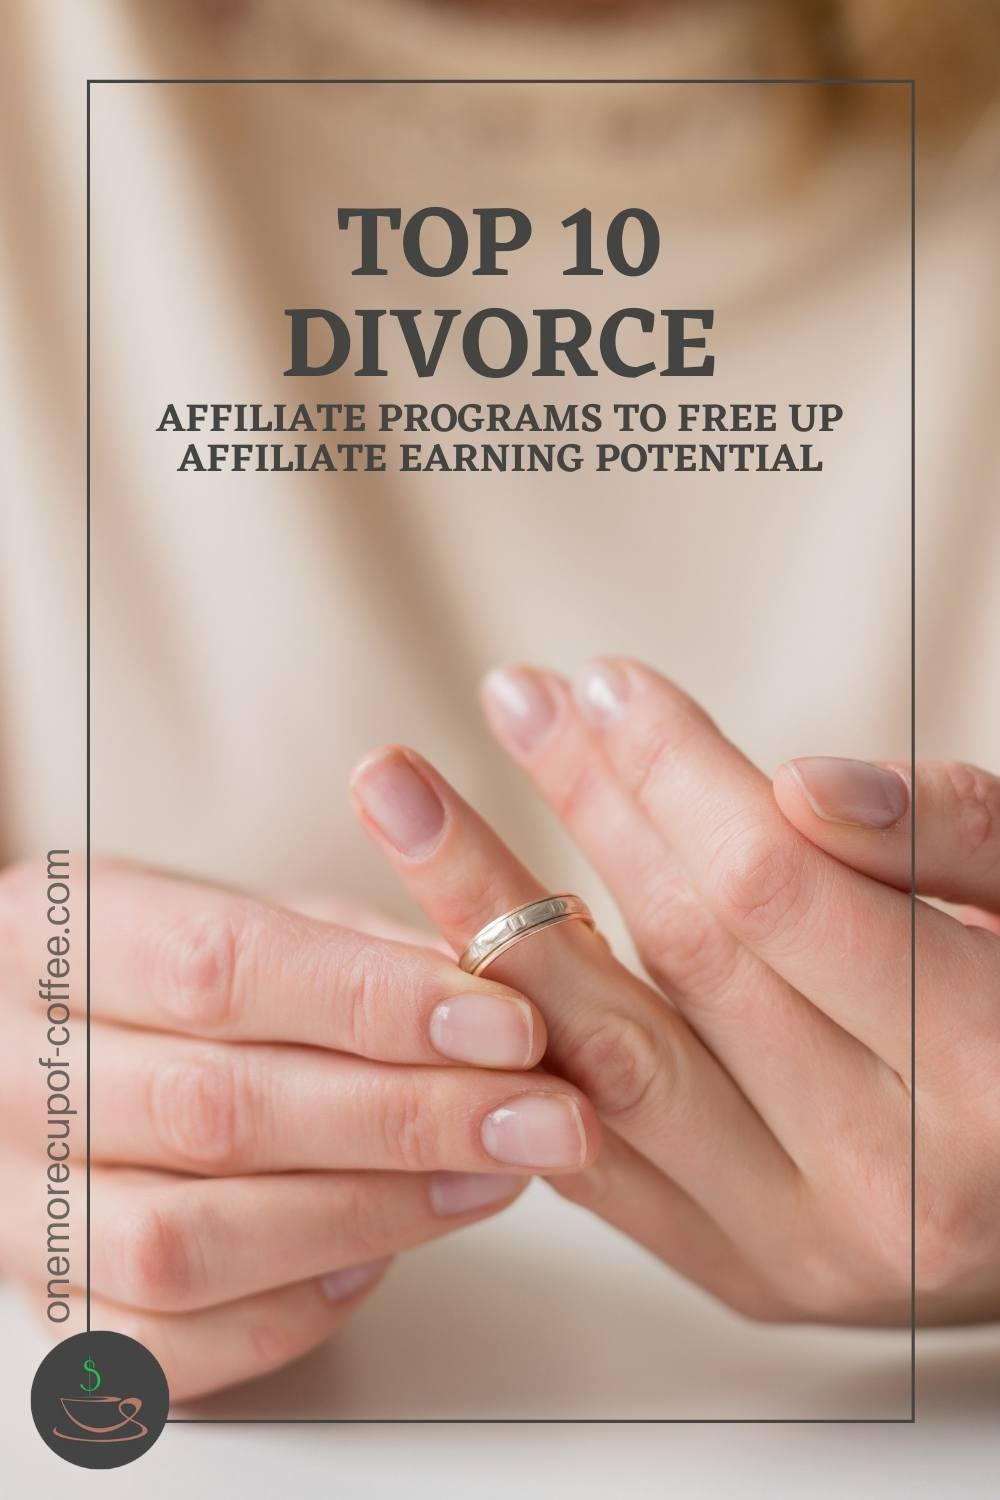 """closeup image of a woman's hands playing with her wedding ring; with text overlay """"Top 10 Divorce Affiliate Programs To Free Up Affiliate Earning Potential"""""""